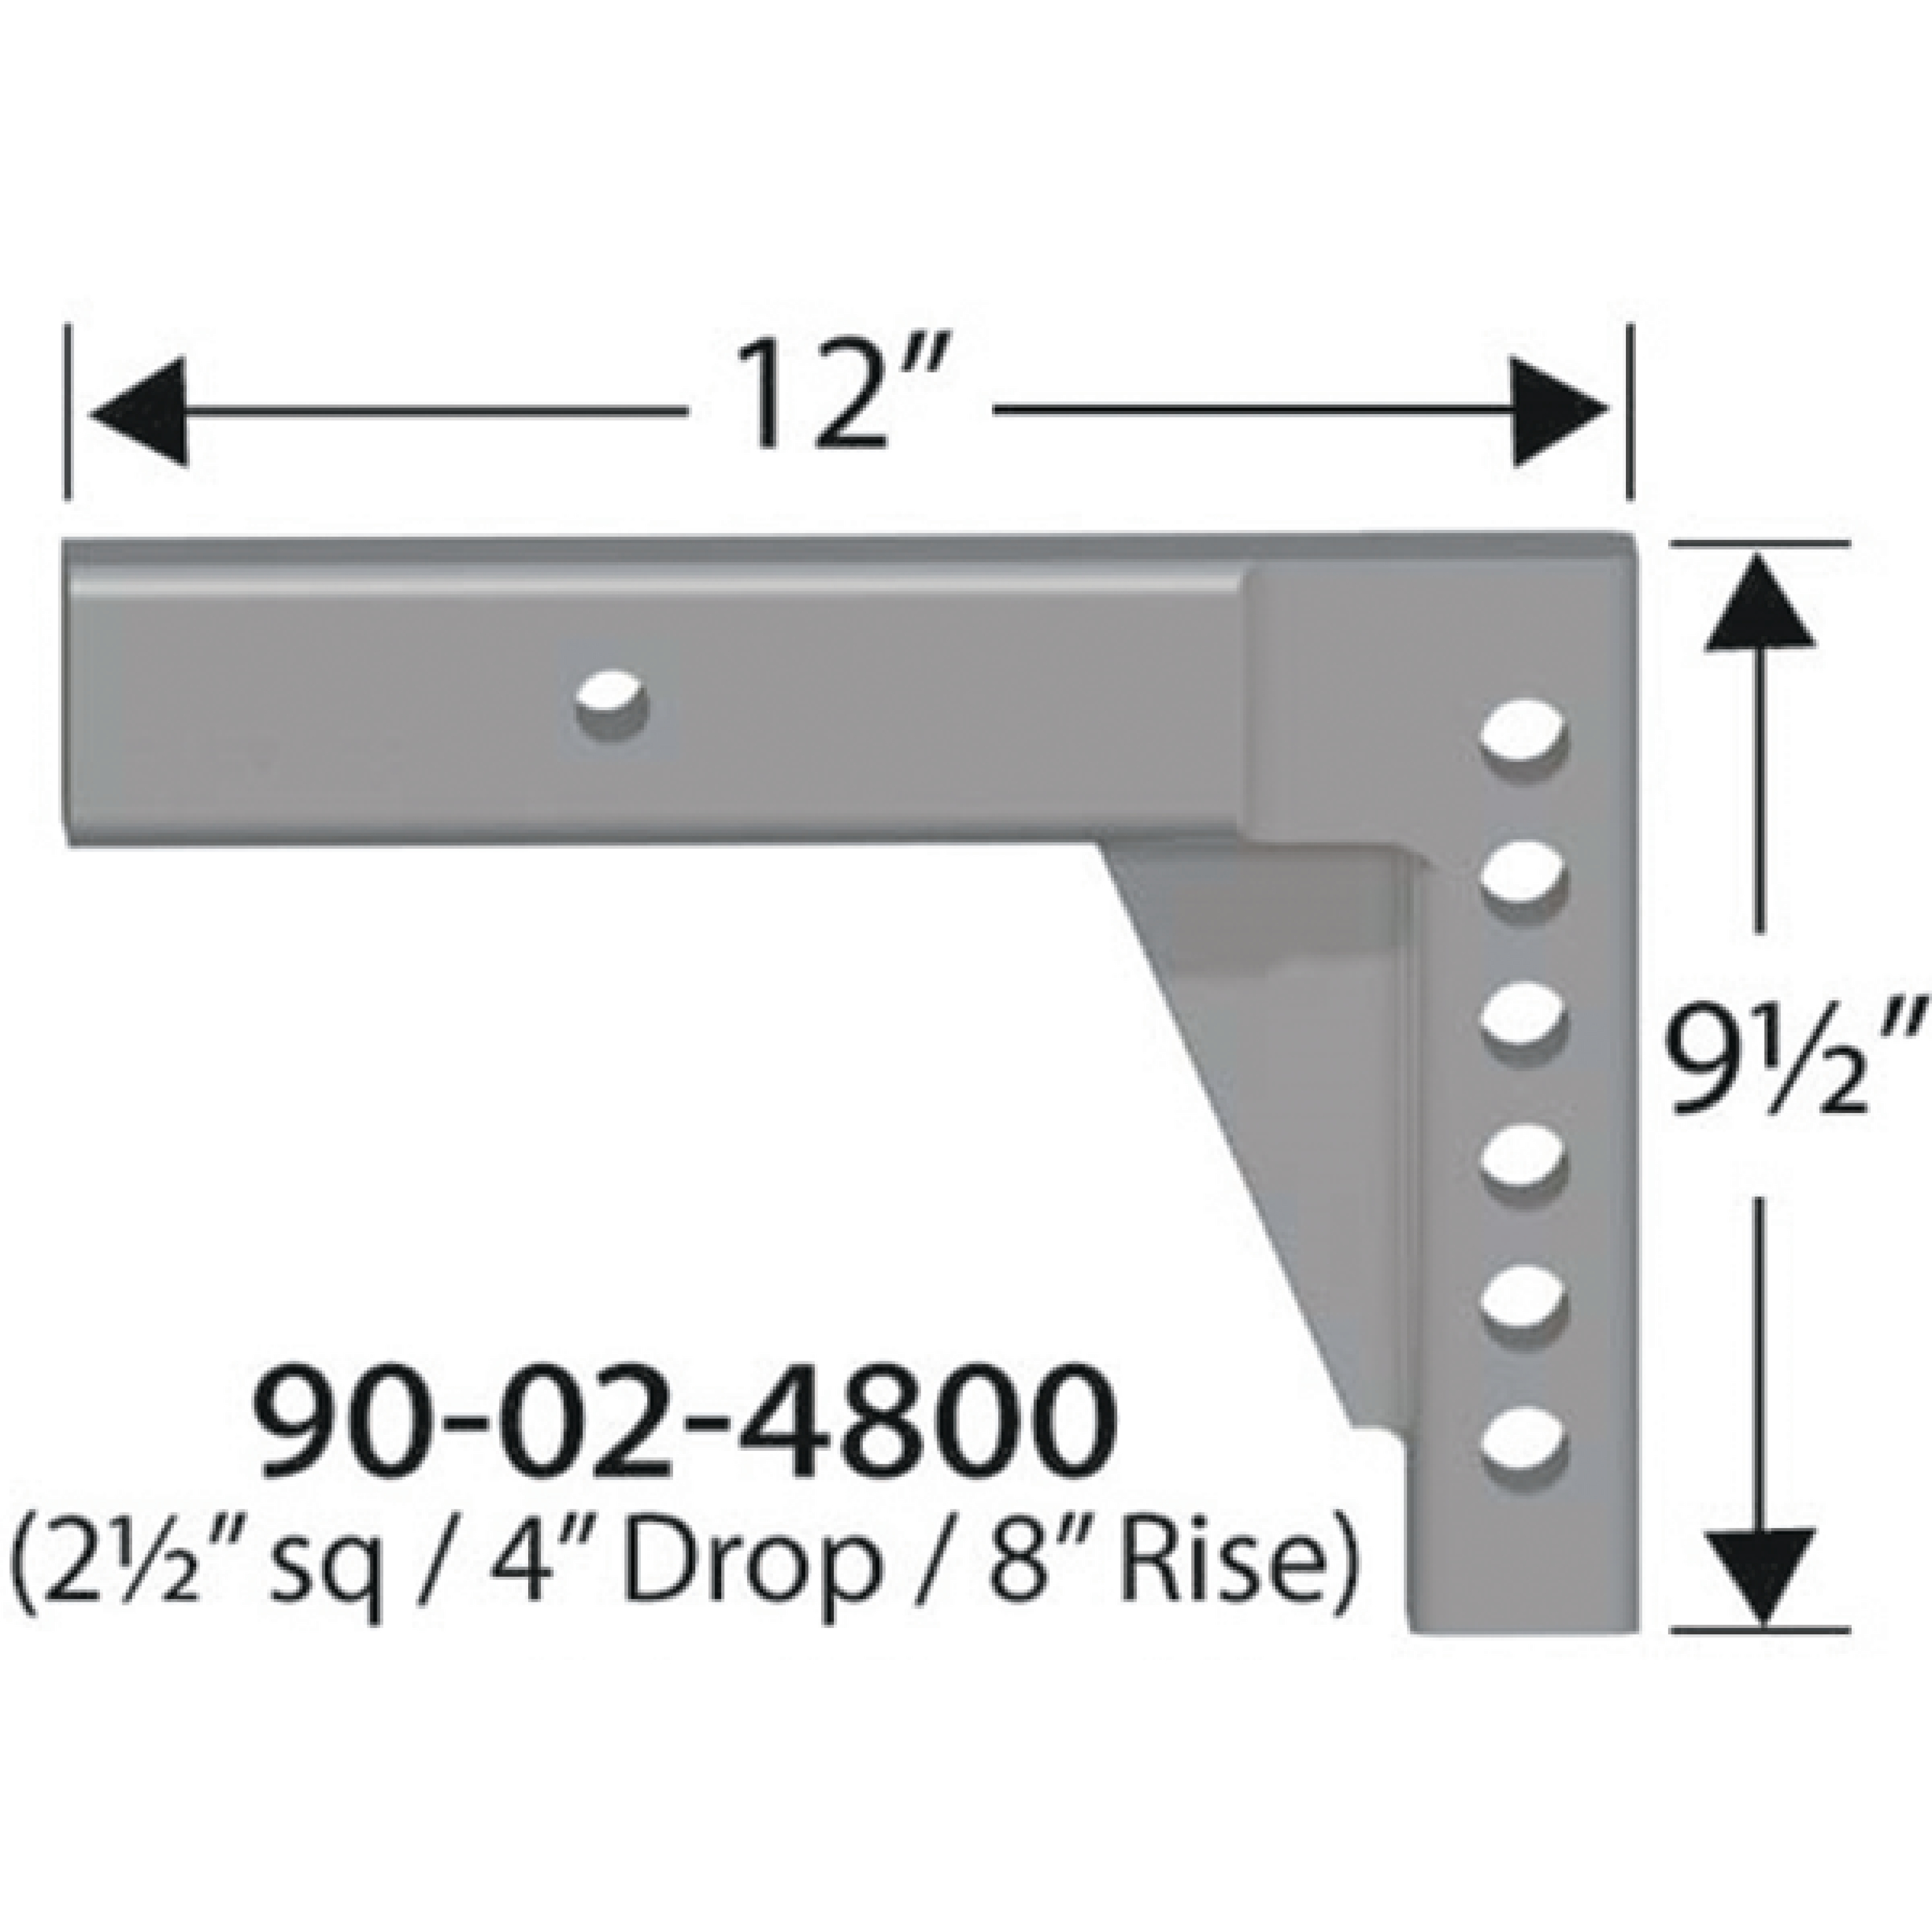 "Progress Mfg 90-02-4800 Equal-i-zer 2-1/2"" Adjustable RV Shank - 4"" Drop, 8"" Rise & 12"" Length"